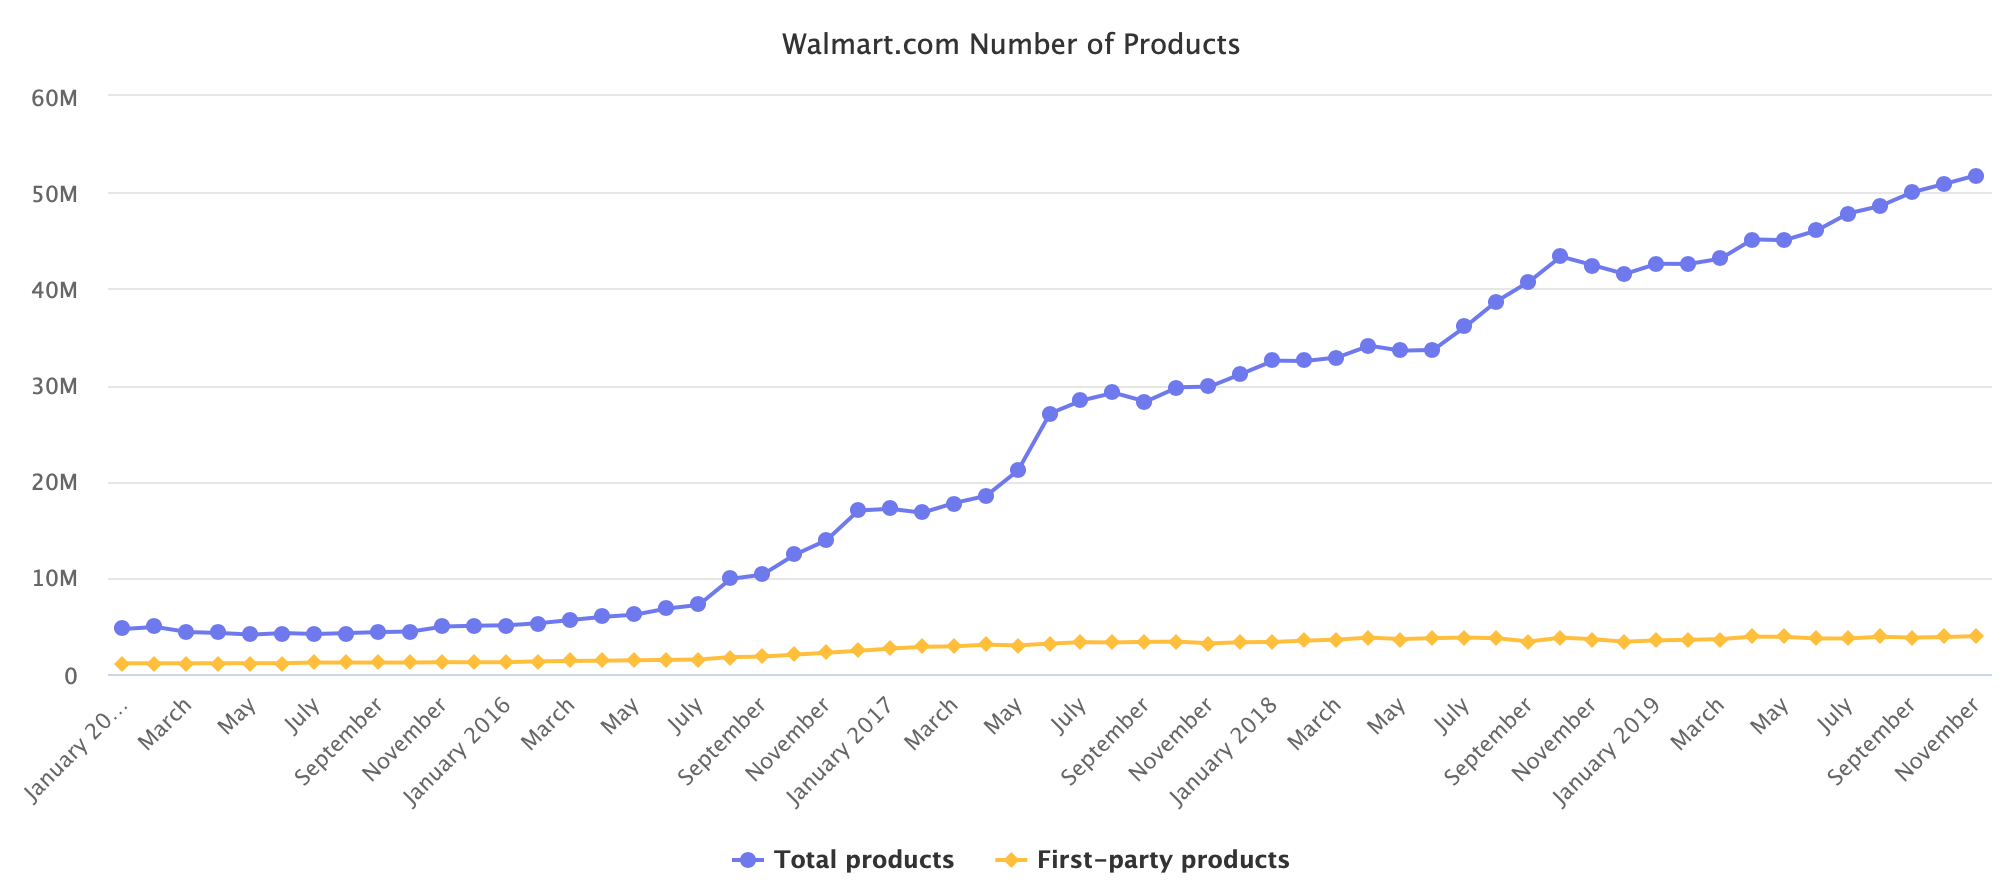 Walmart Number of Products